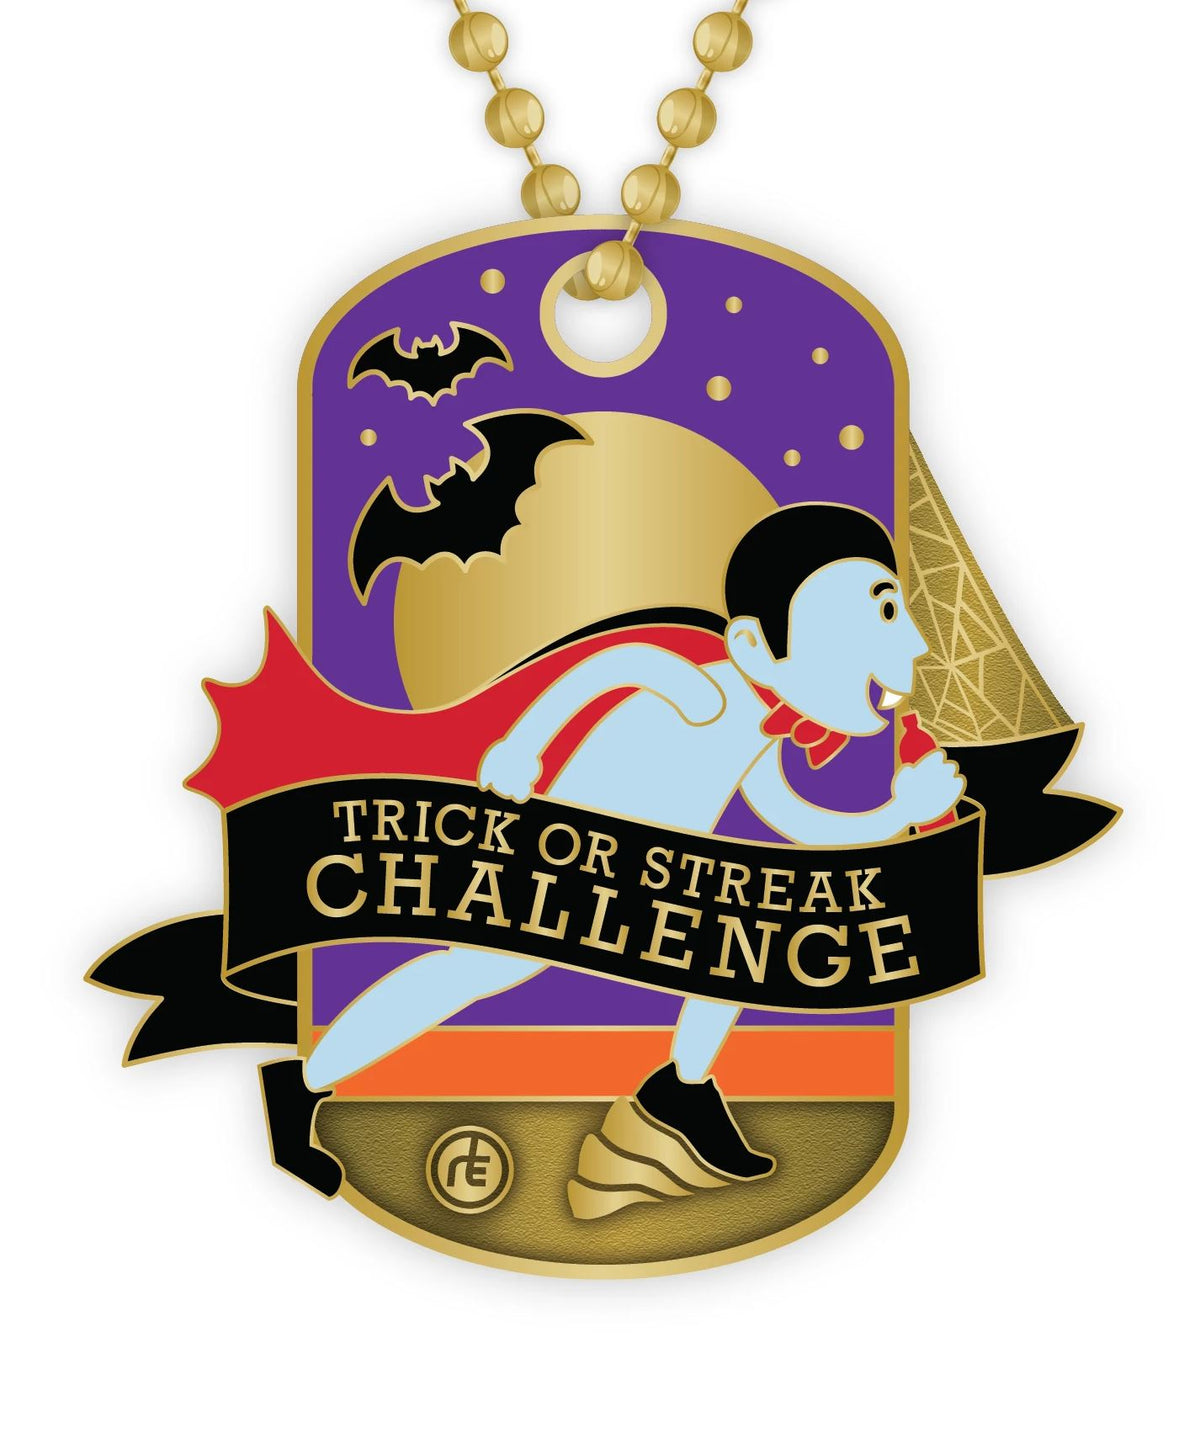 2020 Trick or Streak Dog Tag Medals Run The Edge Store